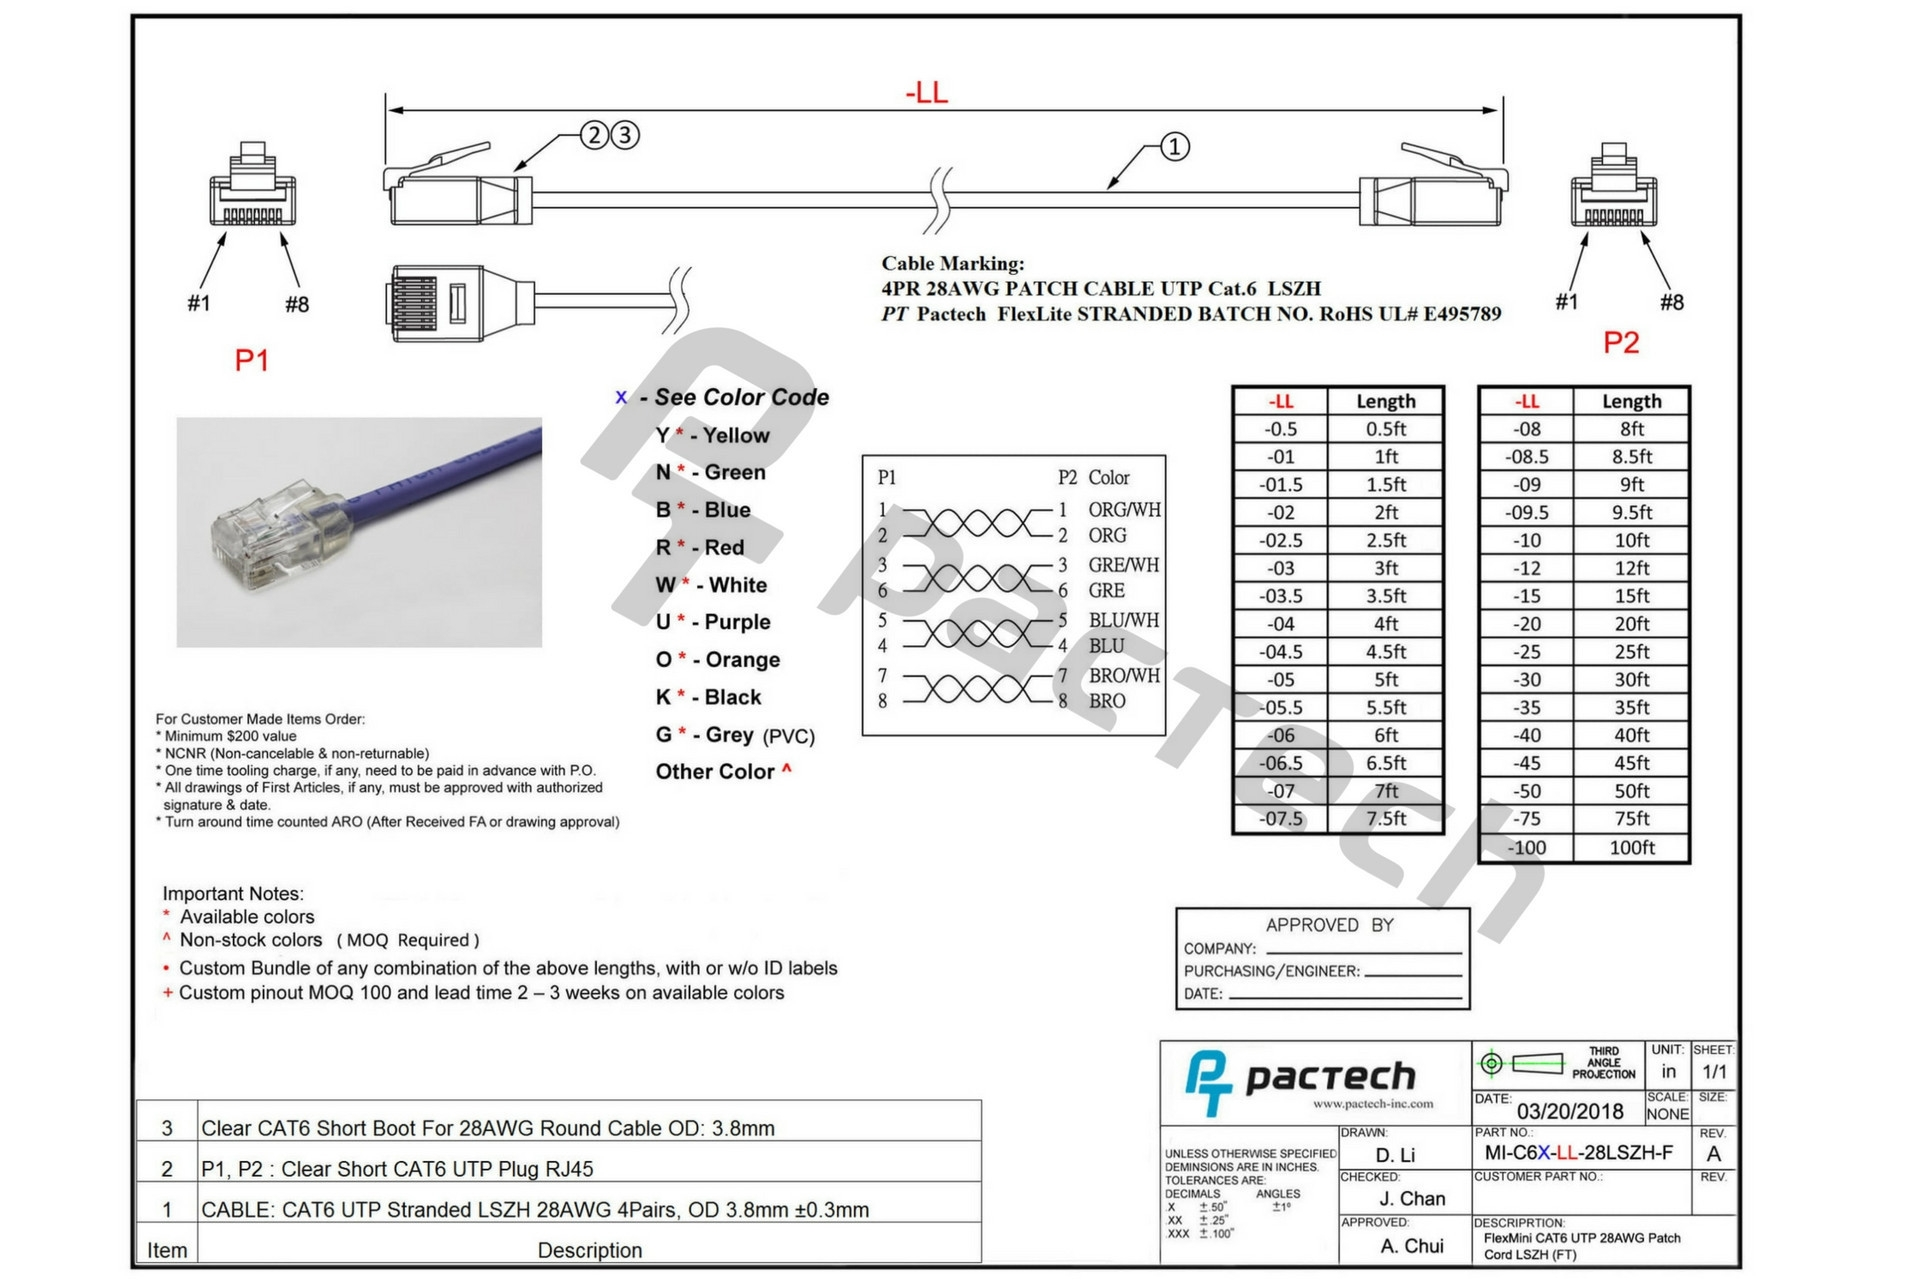 wiring diagram for rj11 to rj45